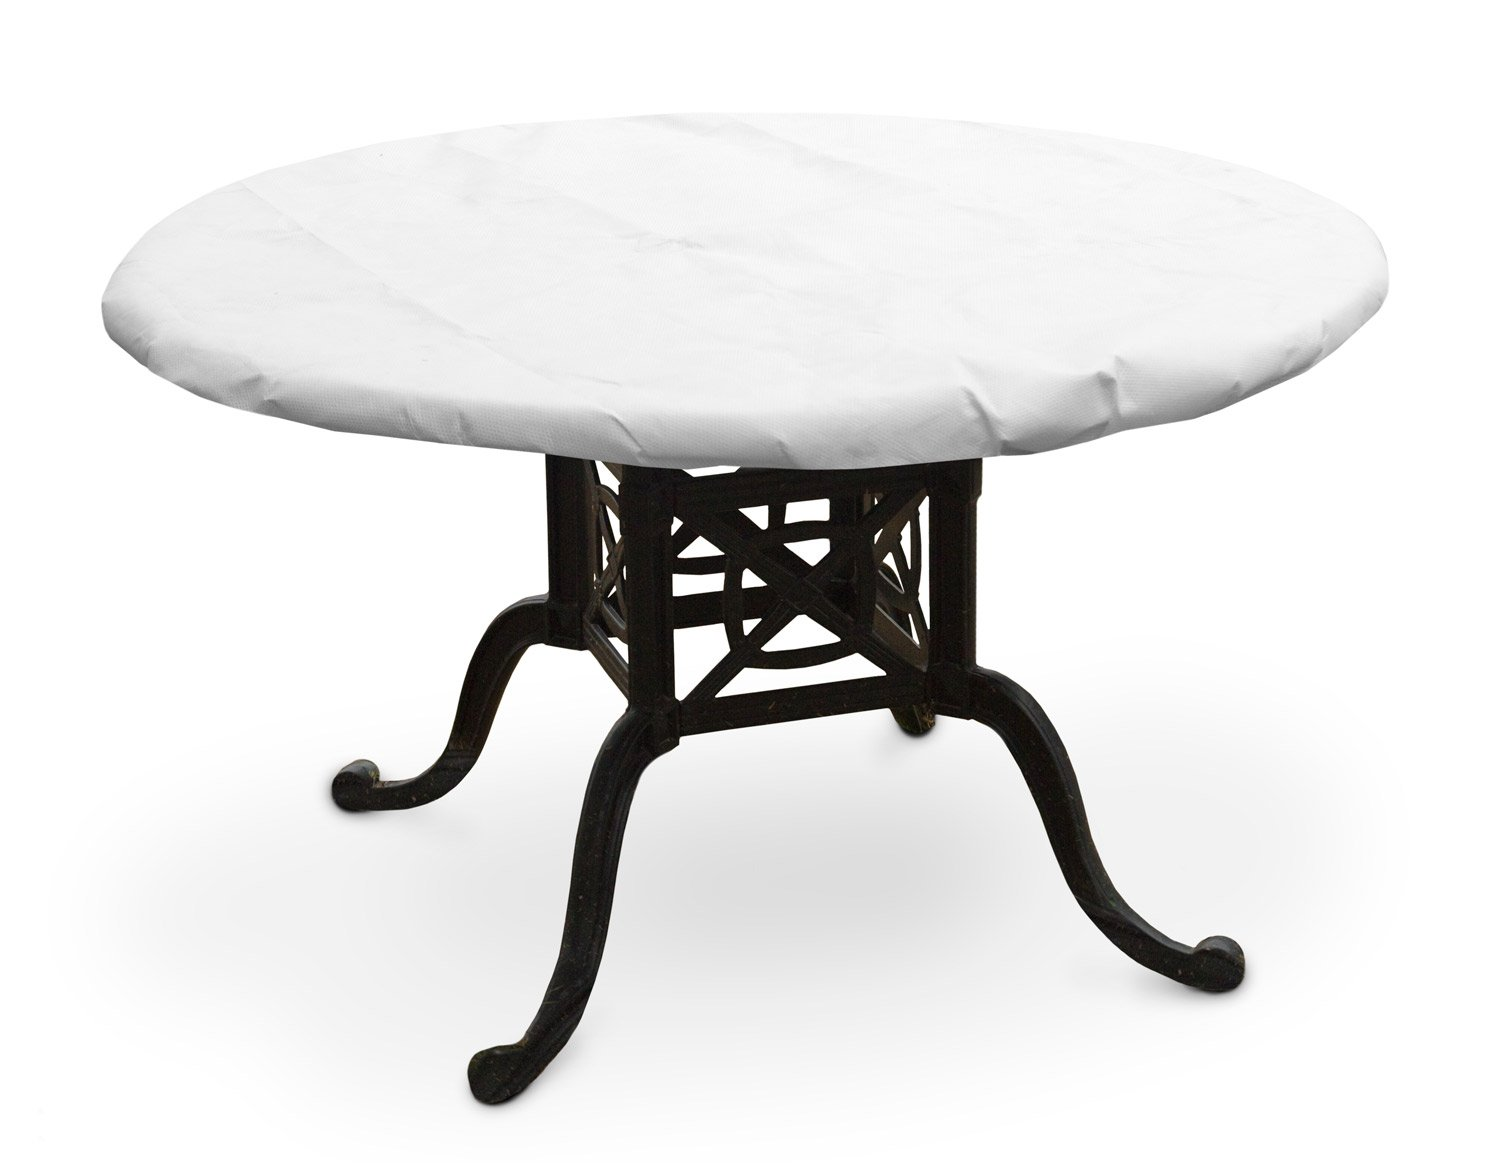 38 Inch Round Table.Koverroos Dupont Tyvek 27420 38 Inch Round Table Top Cover 42 Inch Diameter White